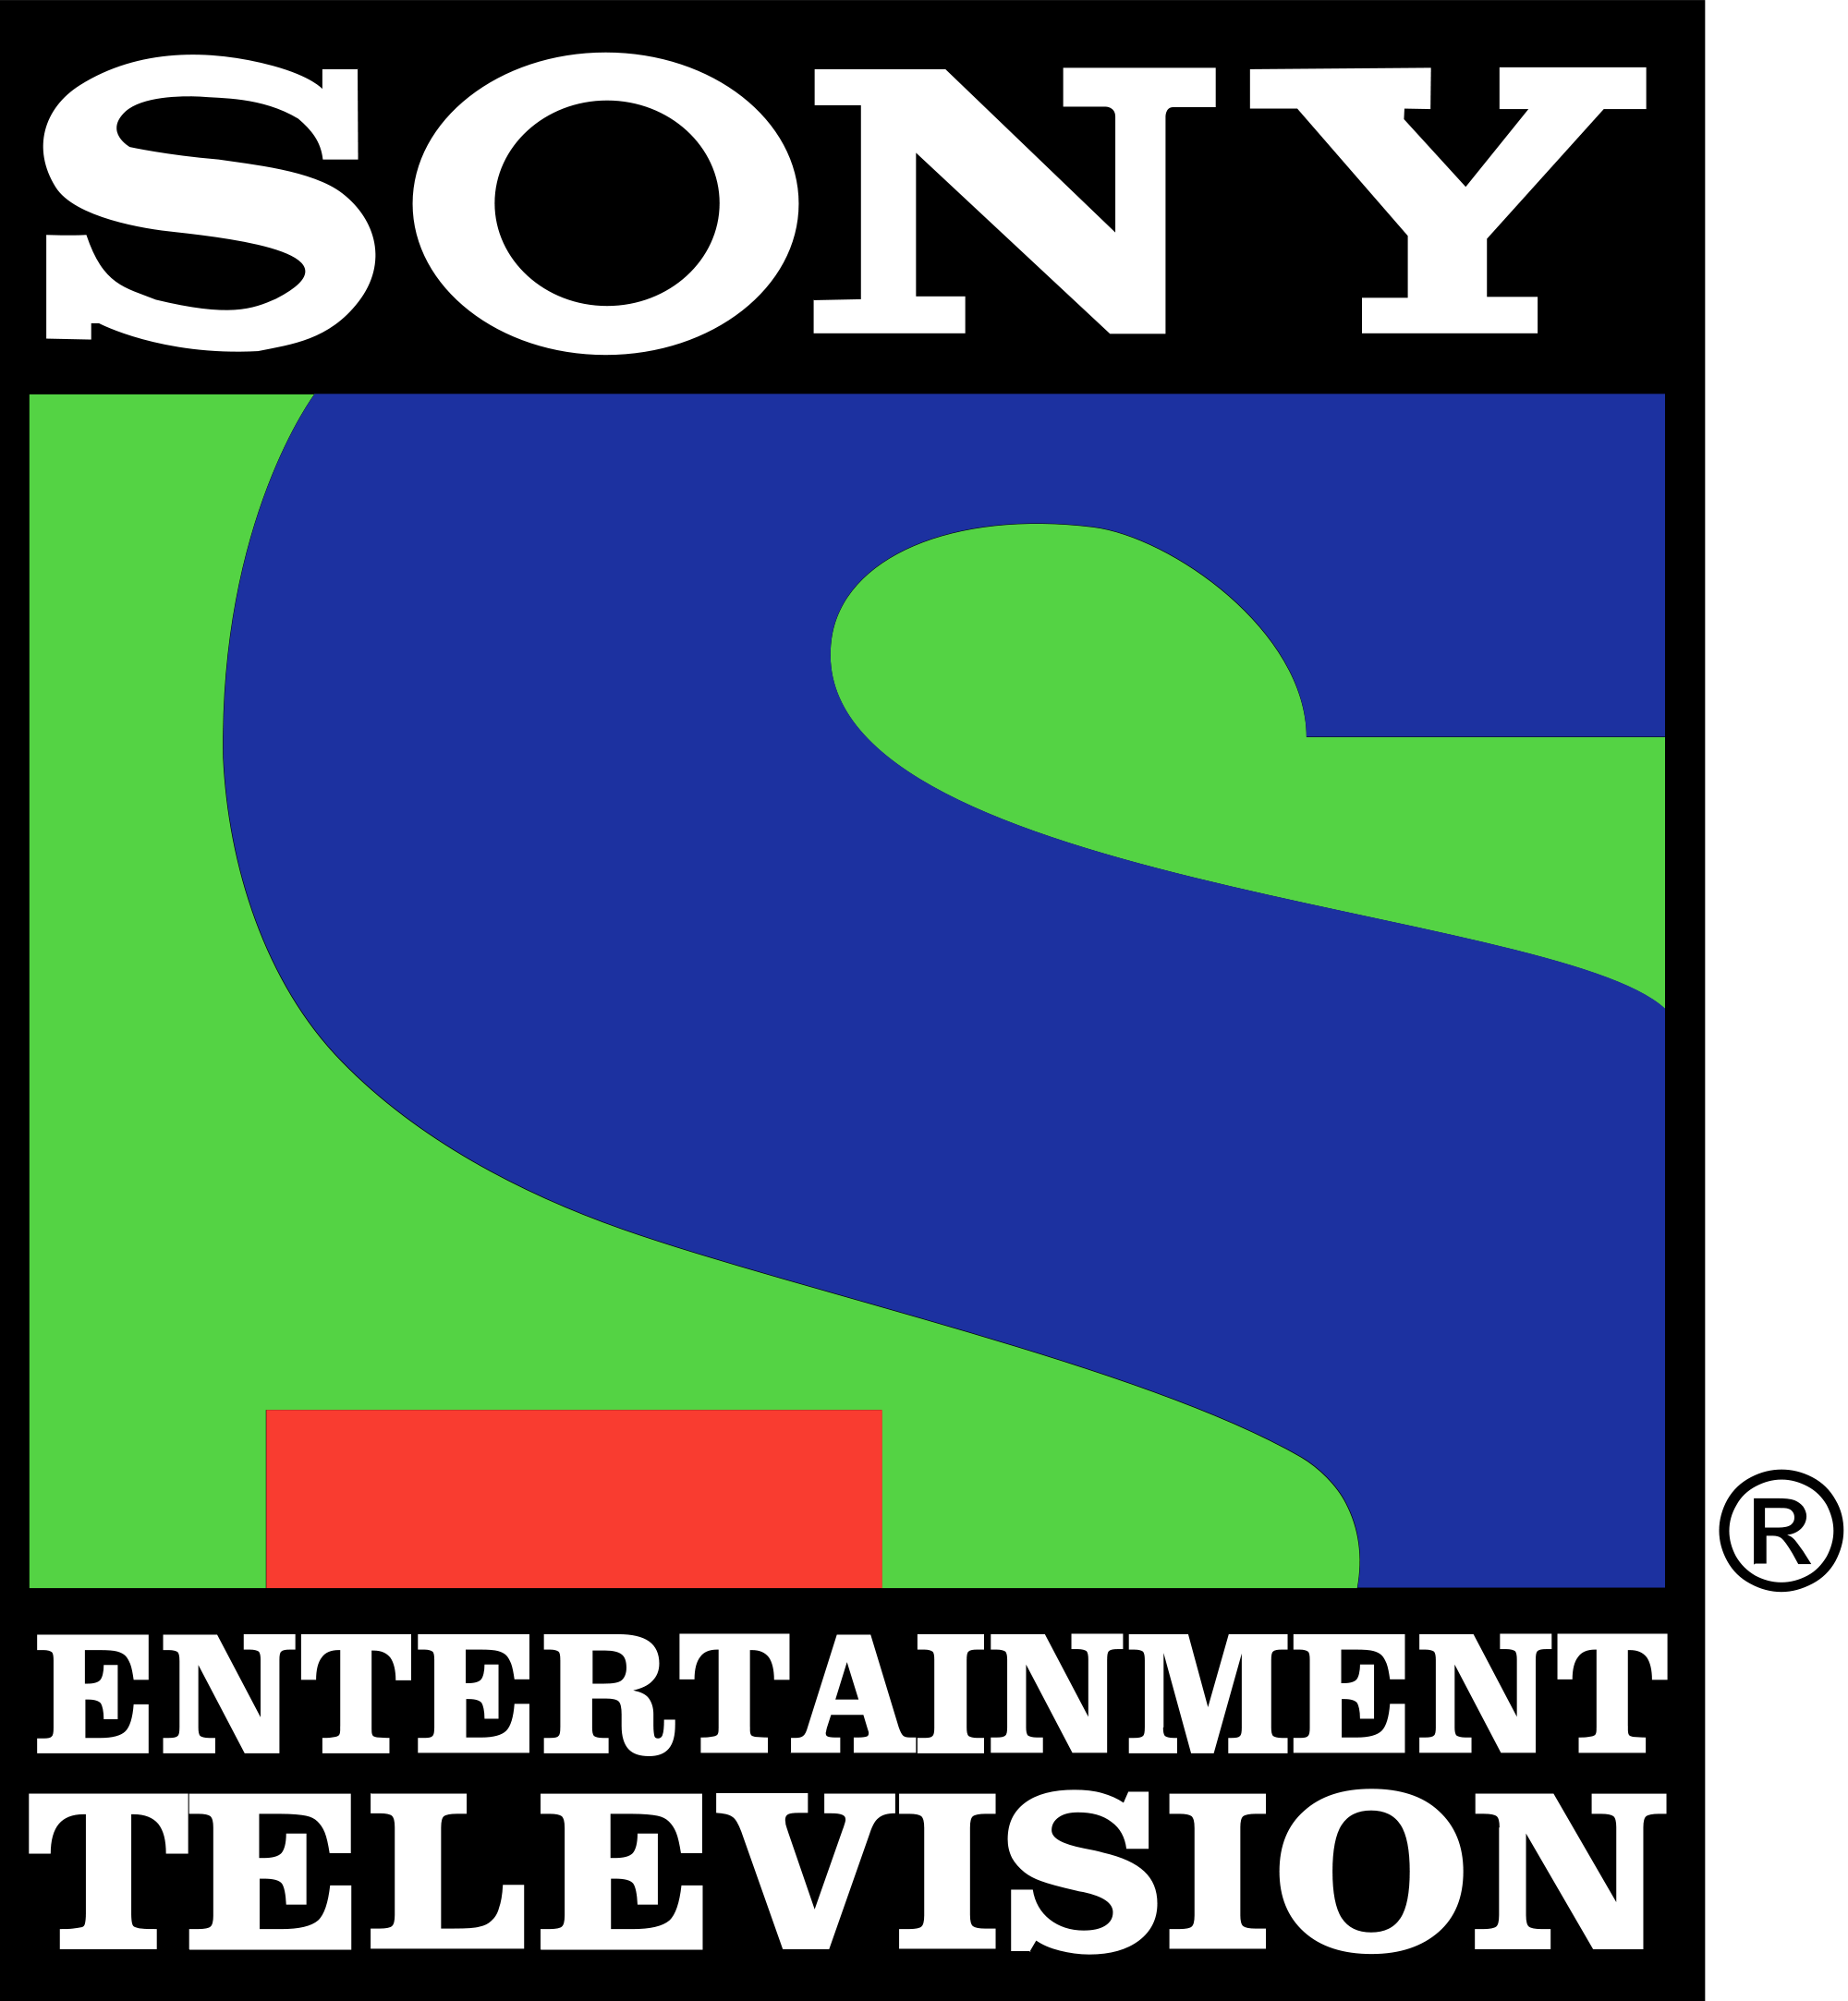 sony entertainment television logos pinterest sony